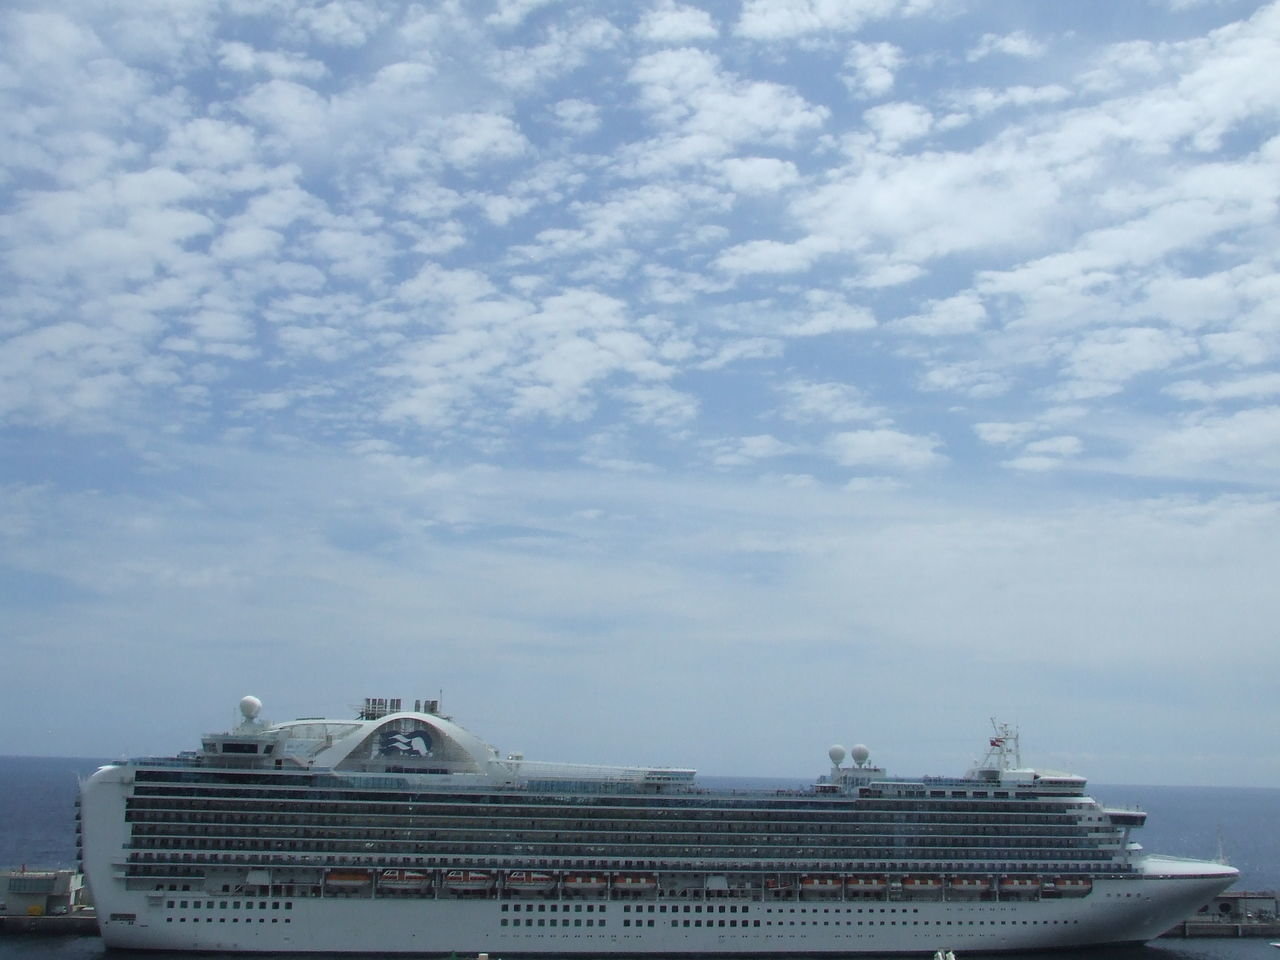 cloud - sky, sky, transportation, nautical vessel, day, outdoors, mode of transport, cruise ship, ship, no people, low angle view, building exterior, water, architecture, nature